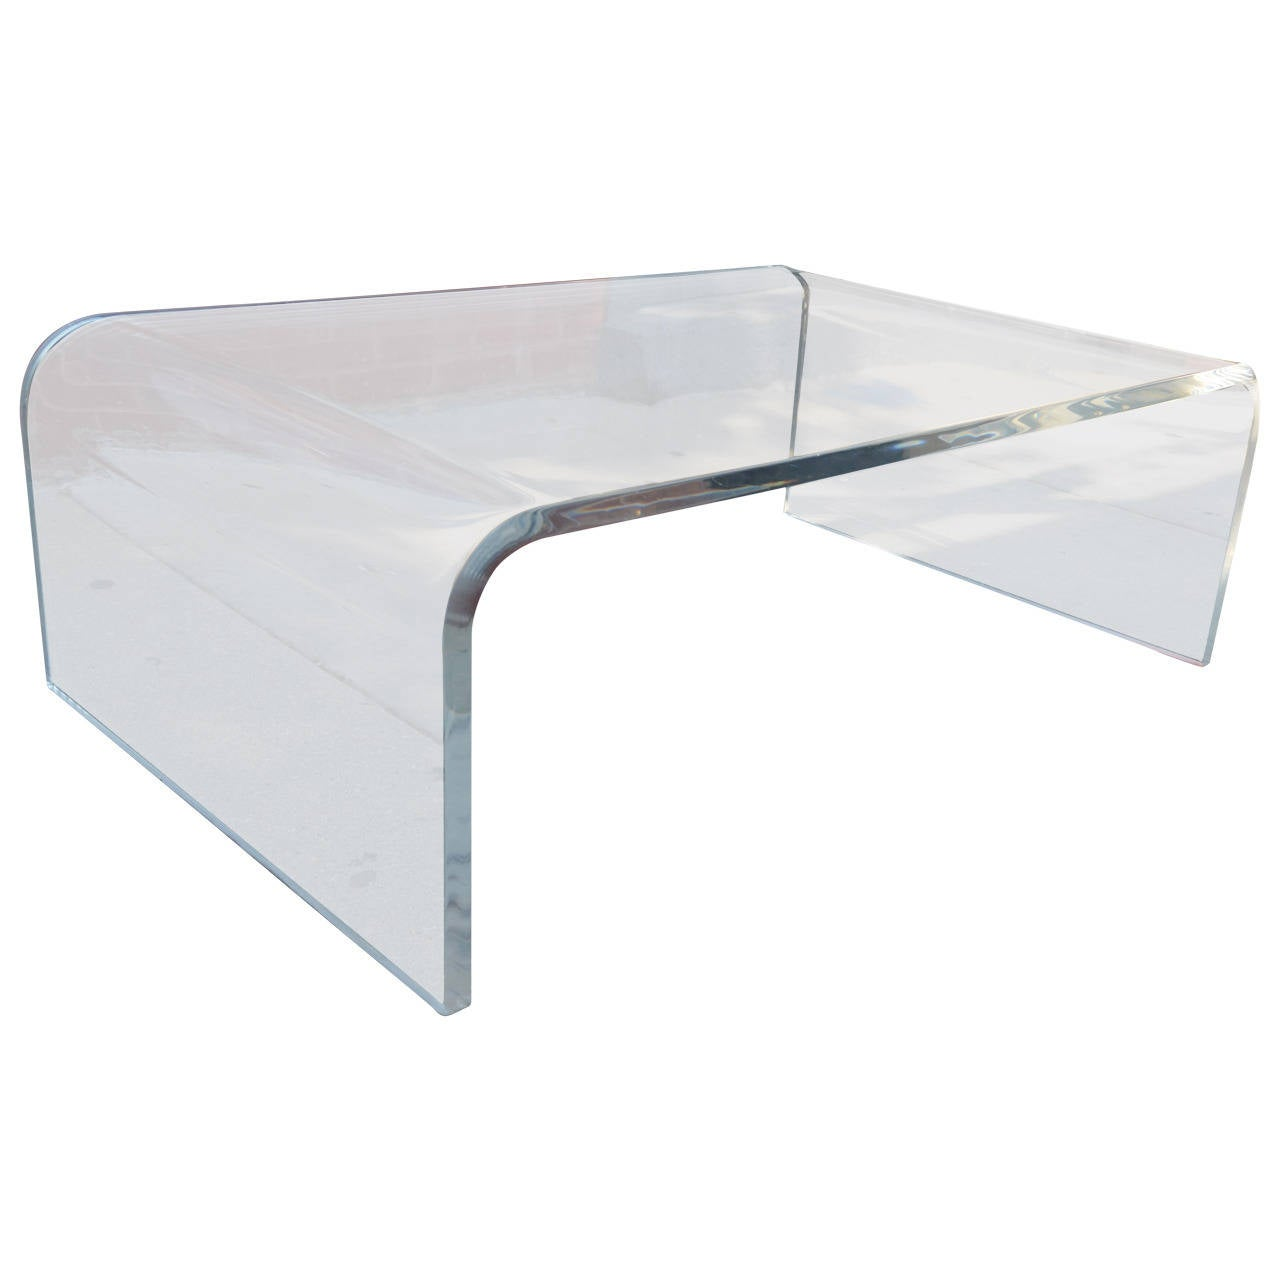 Lucite coffee table bing images Bench coffee tables